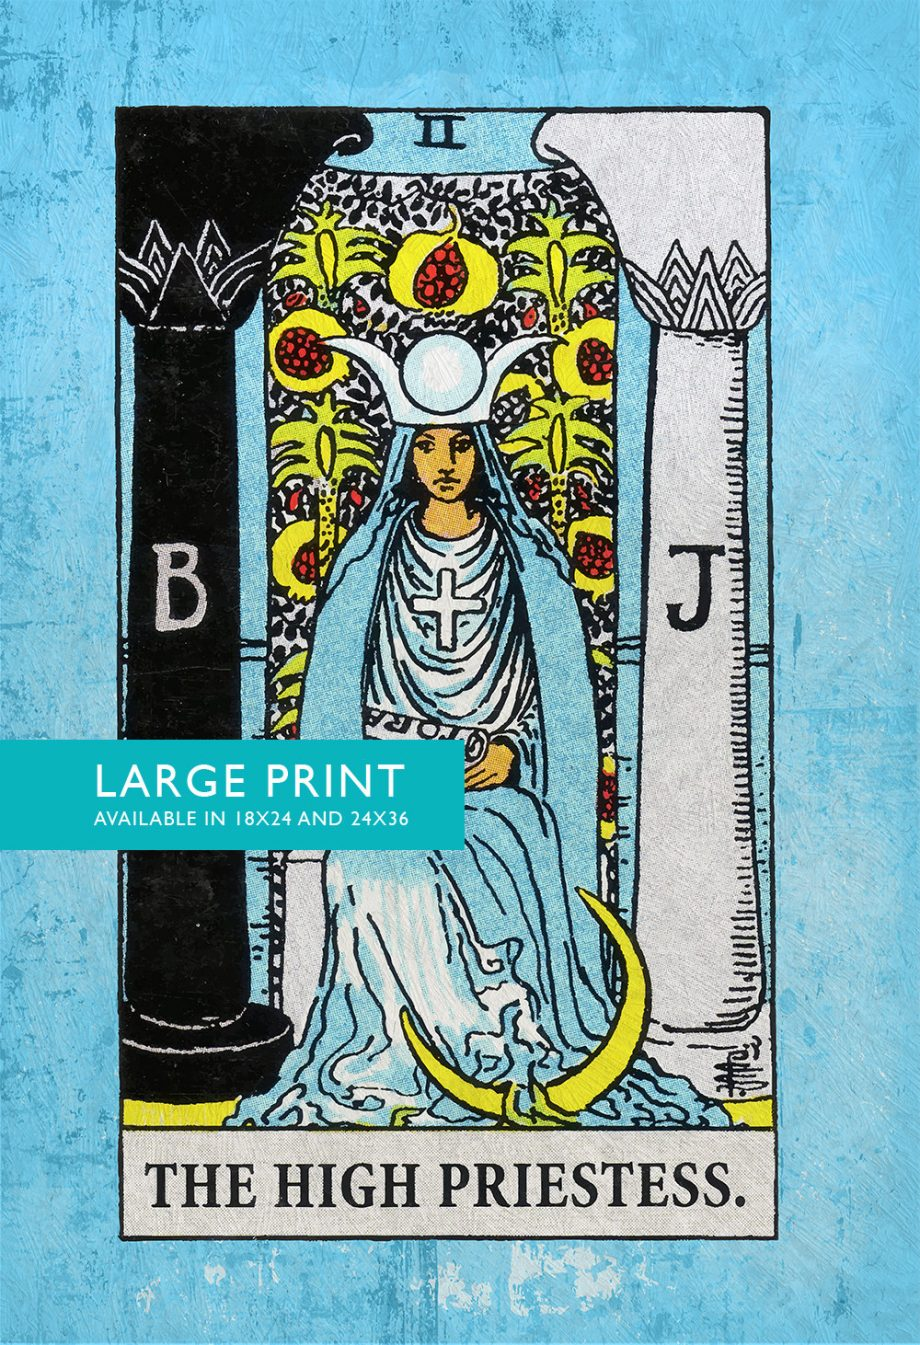 tarot-print-high-priestess-retro-illustration-art-rider-print-vintage-giclee-on-cotton-canvas-and-satin-photo-paper-5817ac611.jpg